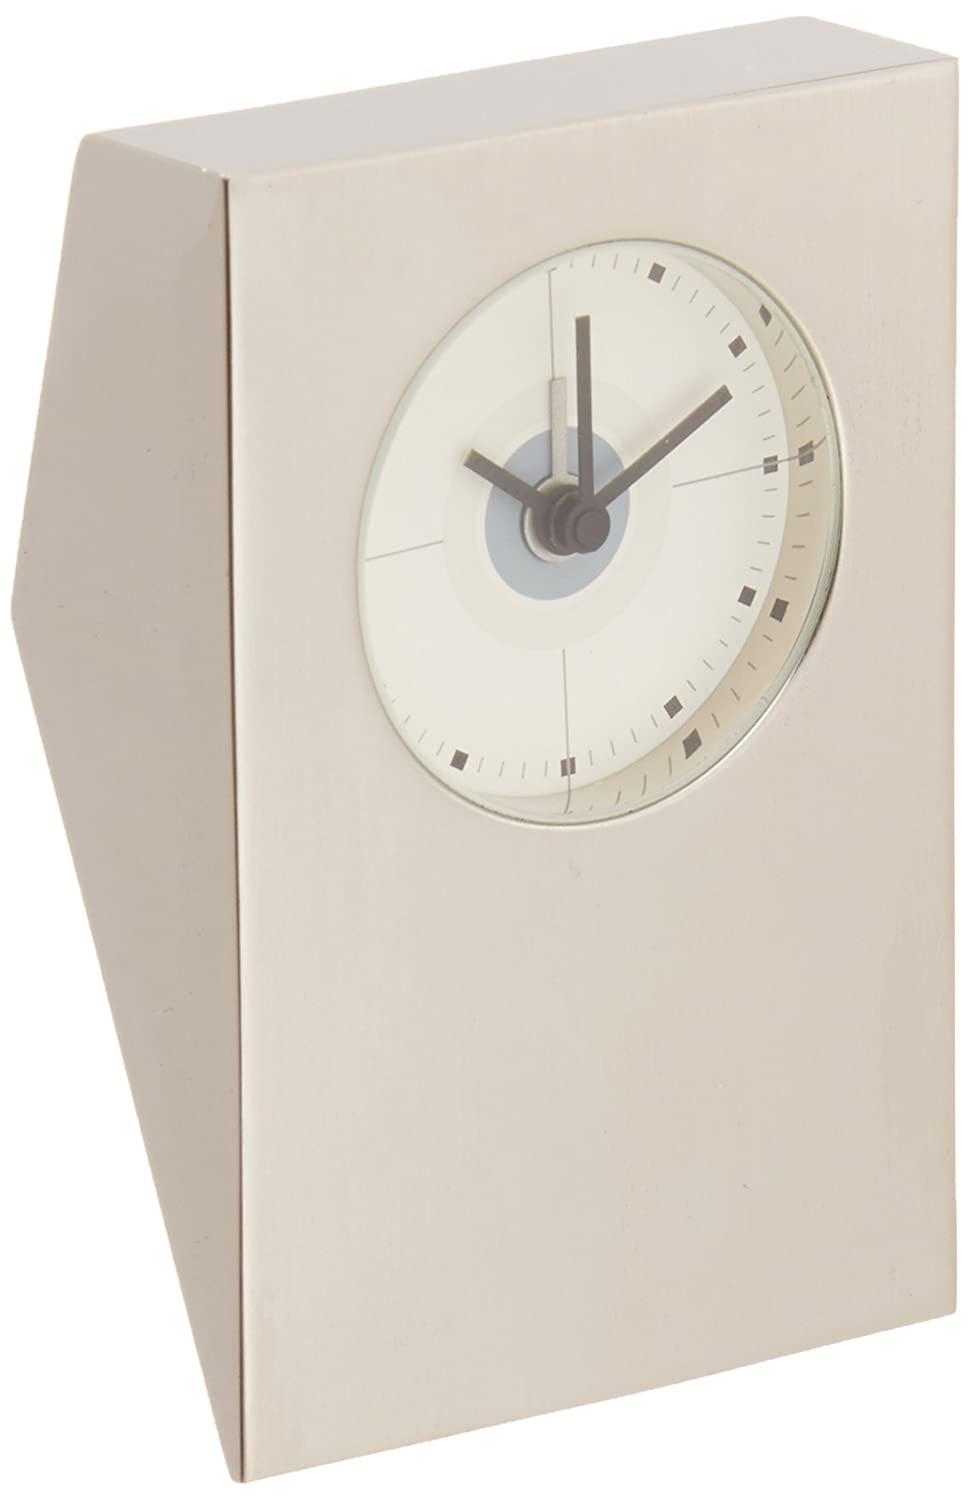 201e7c4a7 Amazon.com  Visol Tracker Brushed Nickel Desk Clock  Home   Kitchen